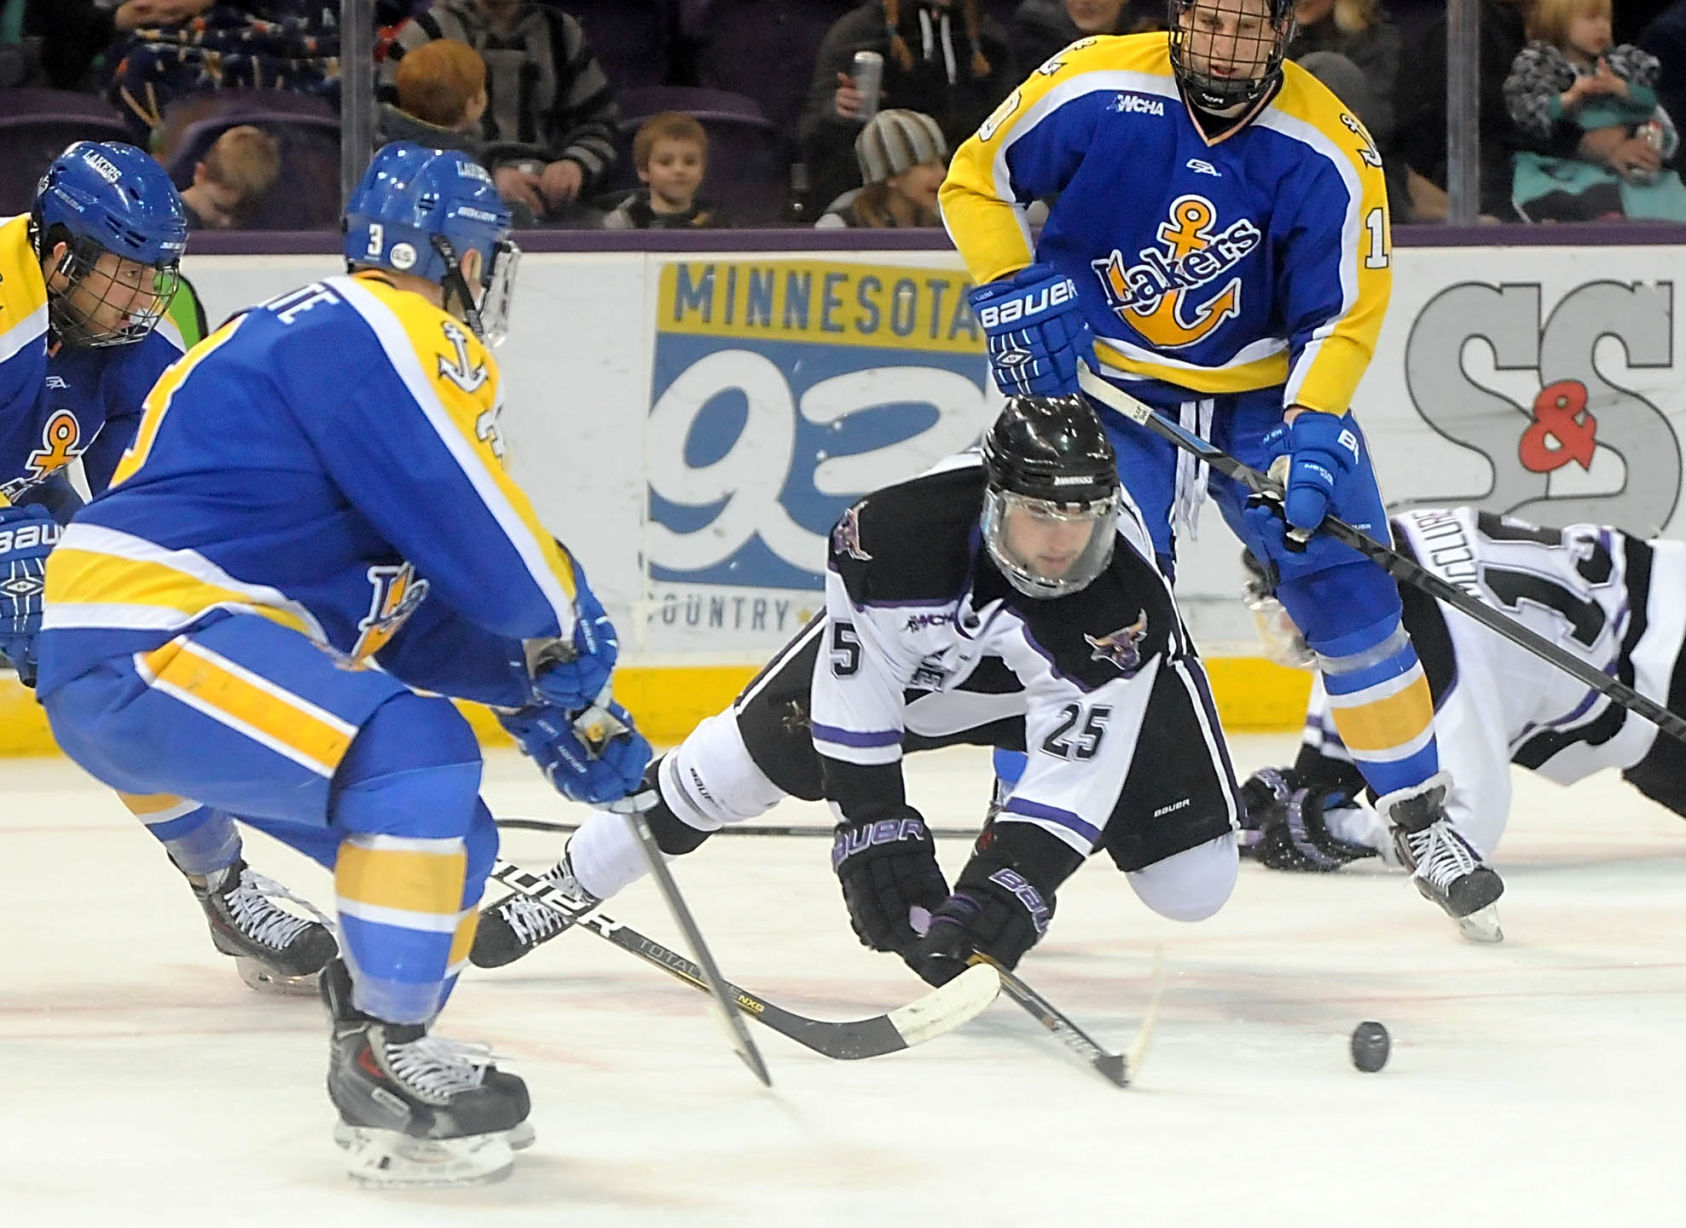 WCHA: Mavericks Sweep Lakers, Punch Ticket To Final Five